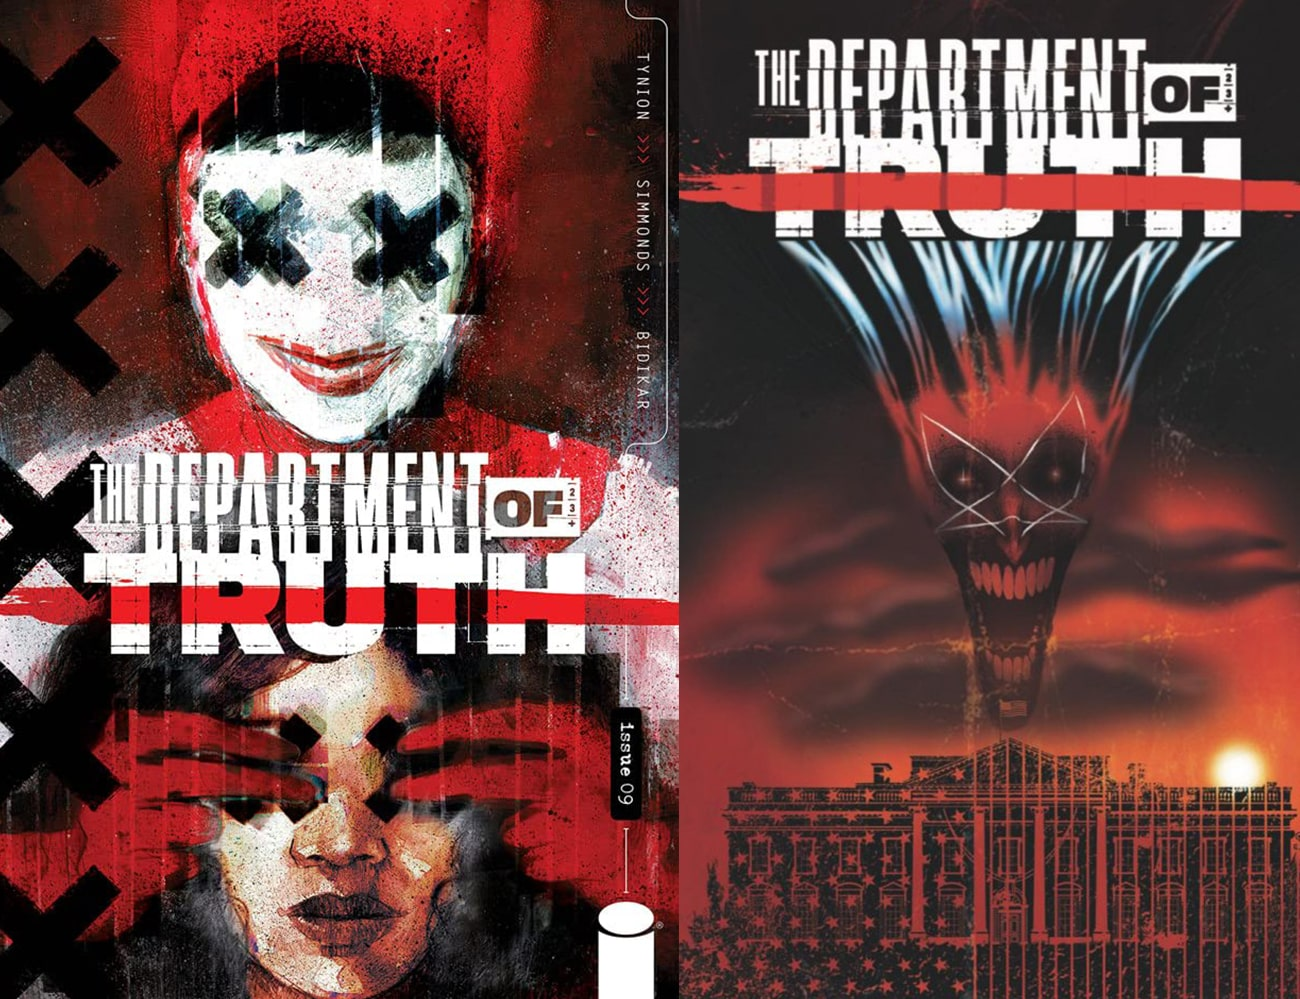 'The Department of Truth' #9 is a prism into a mind-expanding world